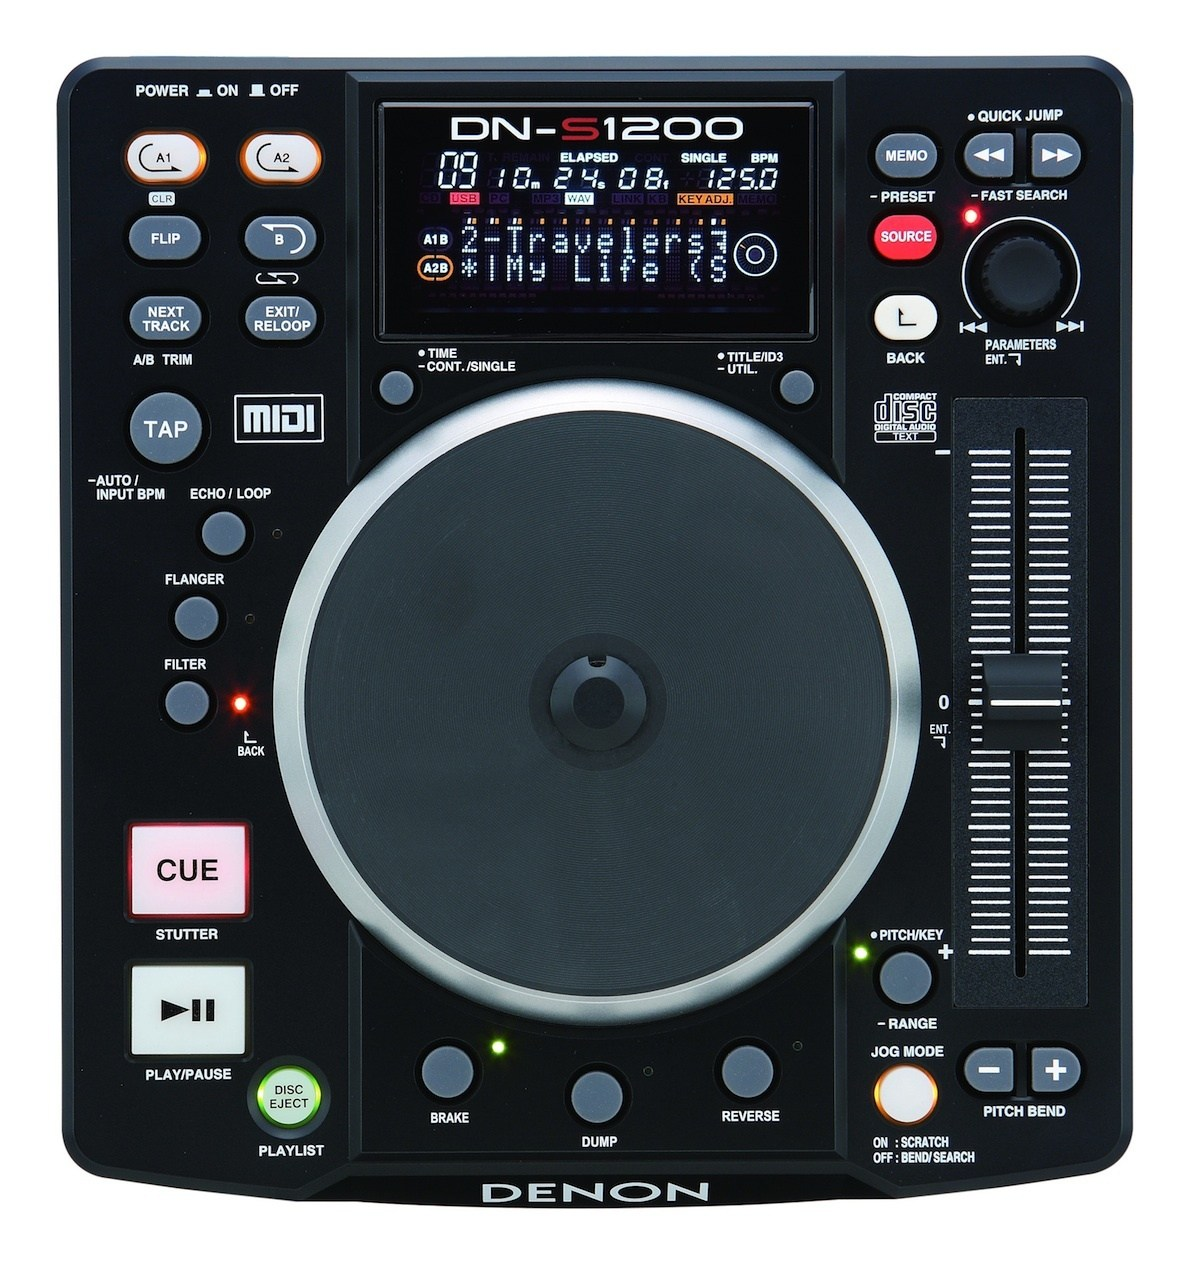 The Denon DN-S1200 digital deck